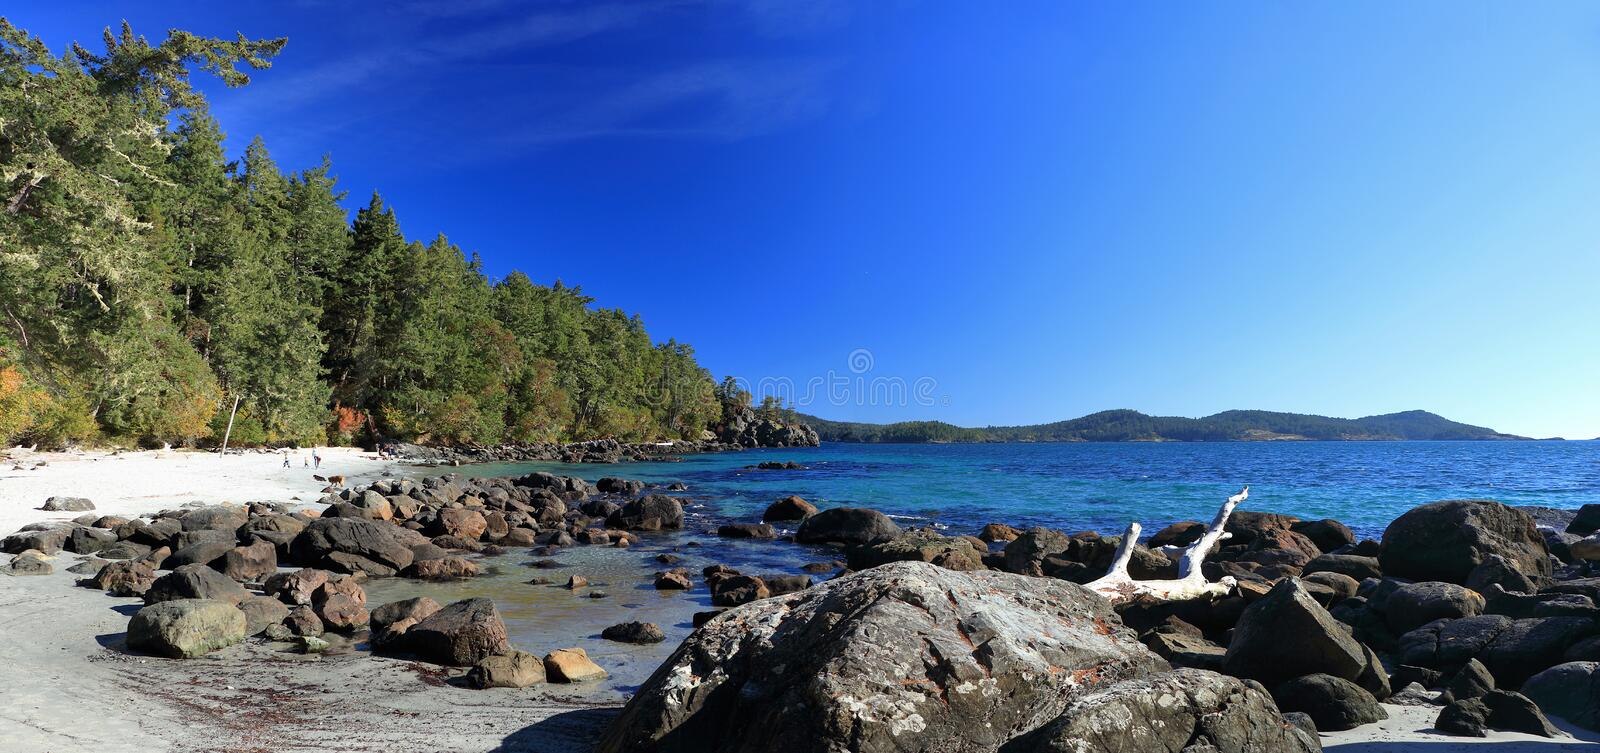 East Sooke Park, Vancouver Island, British Columbia, Canada - Landscape Panorama of White Sand Beach at Beecher Bay. Landscape panorama of clear water, rocks and stock photo